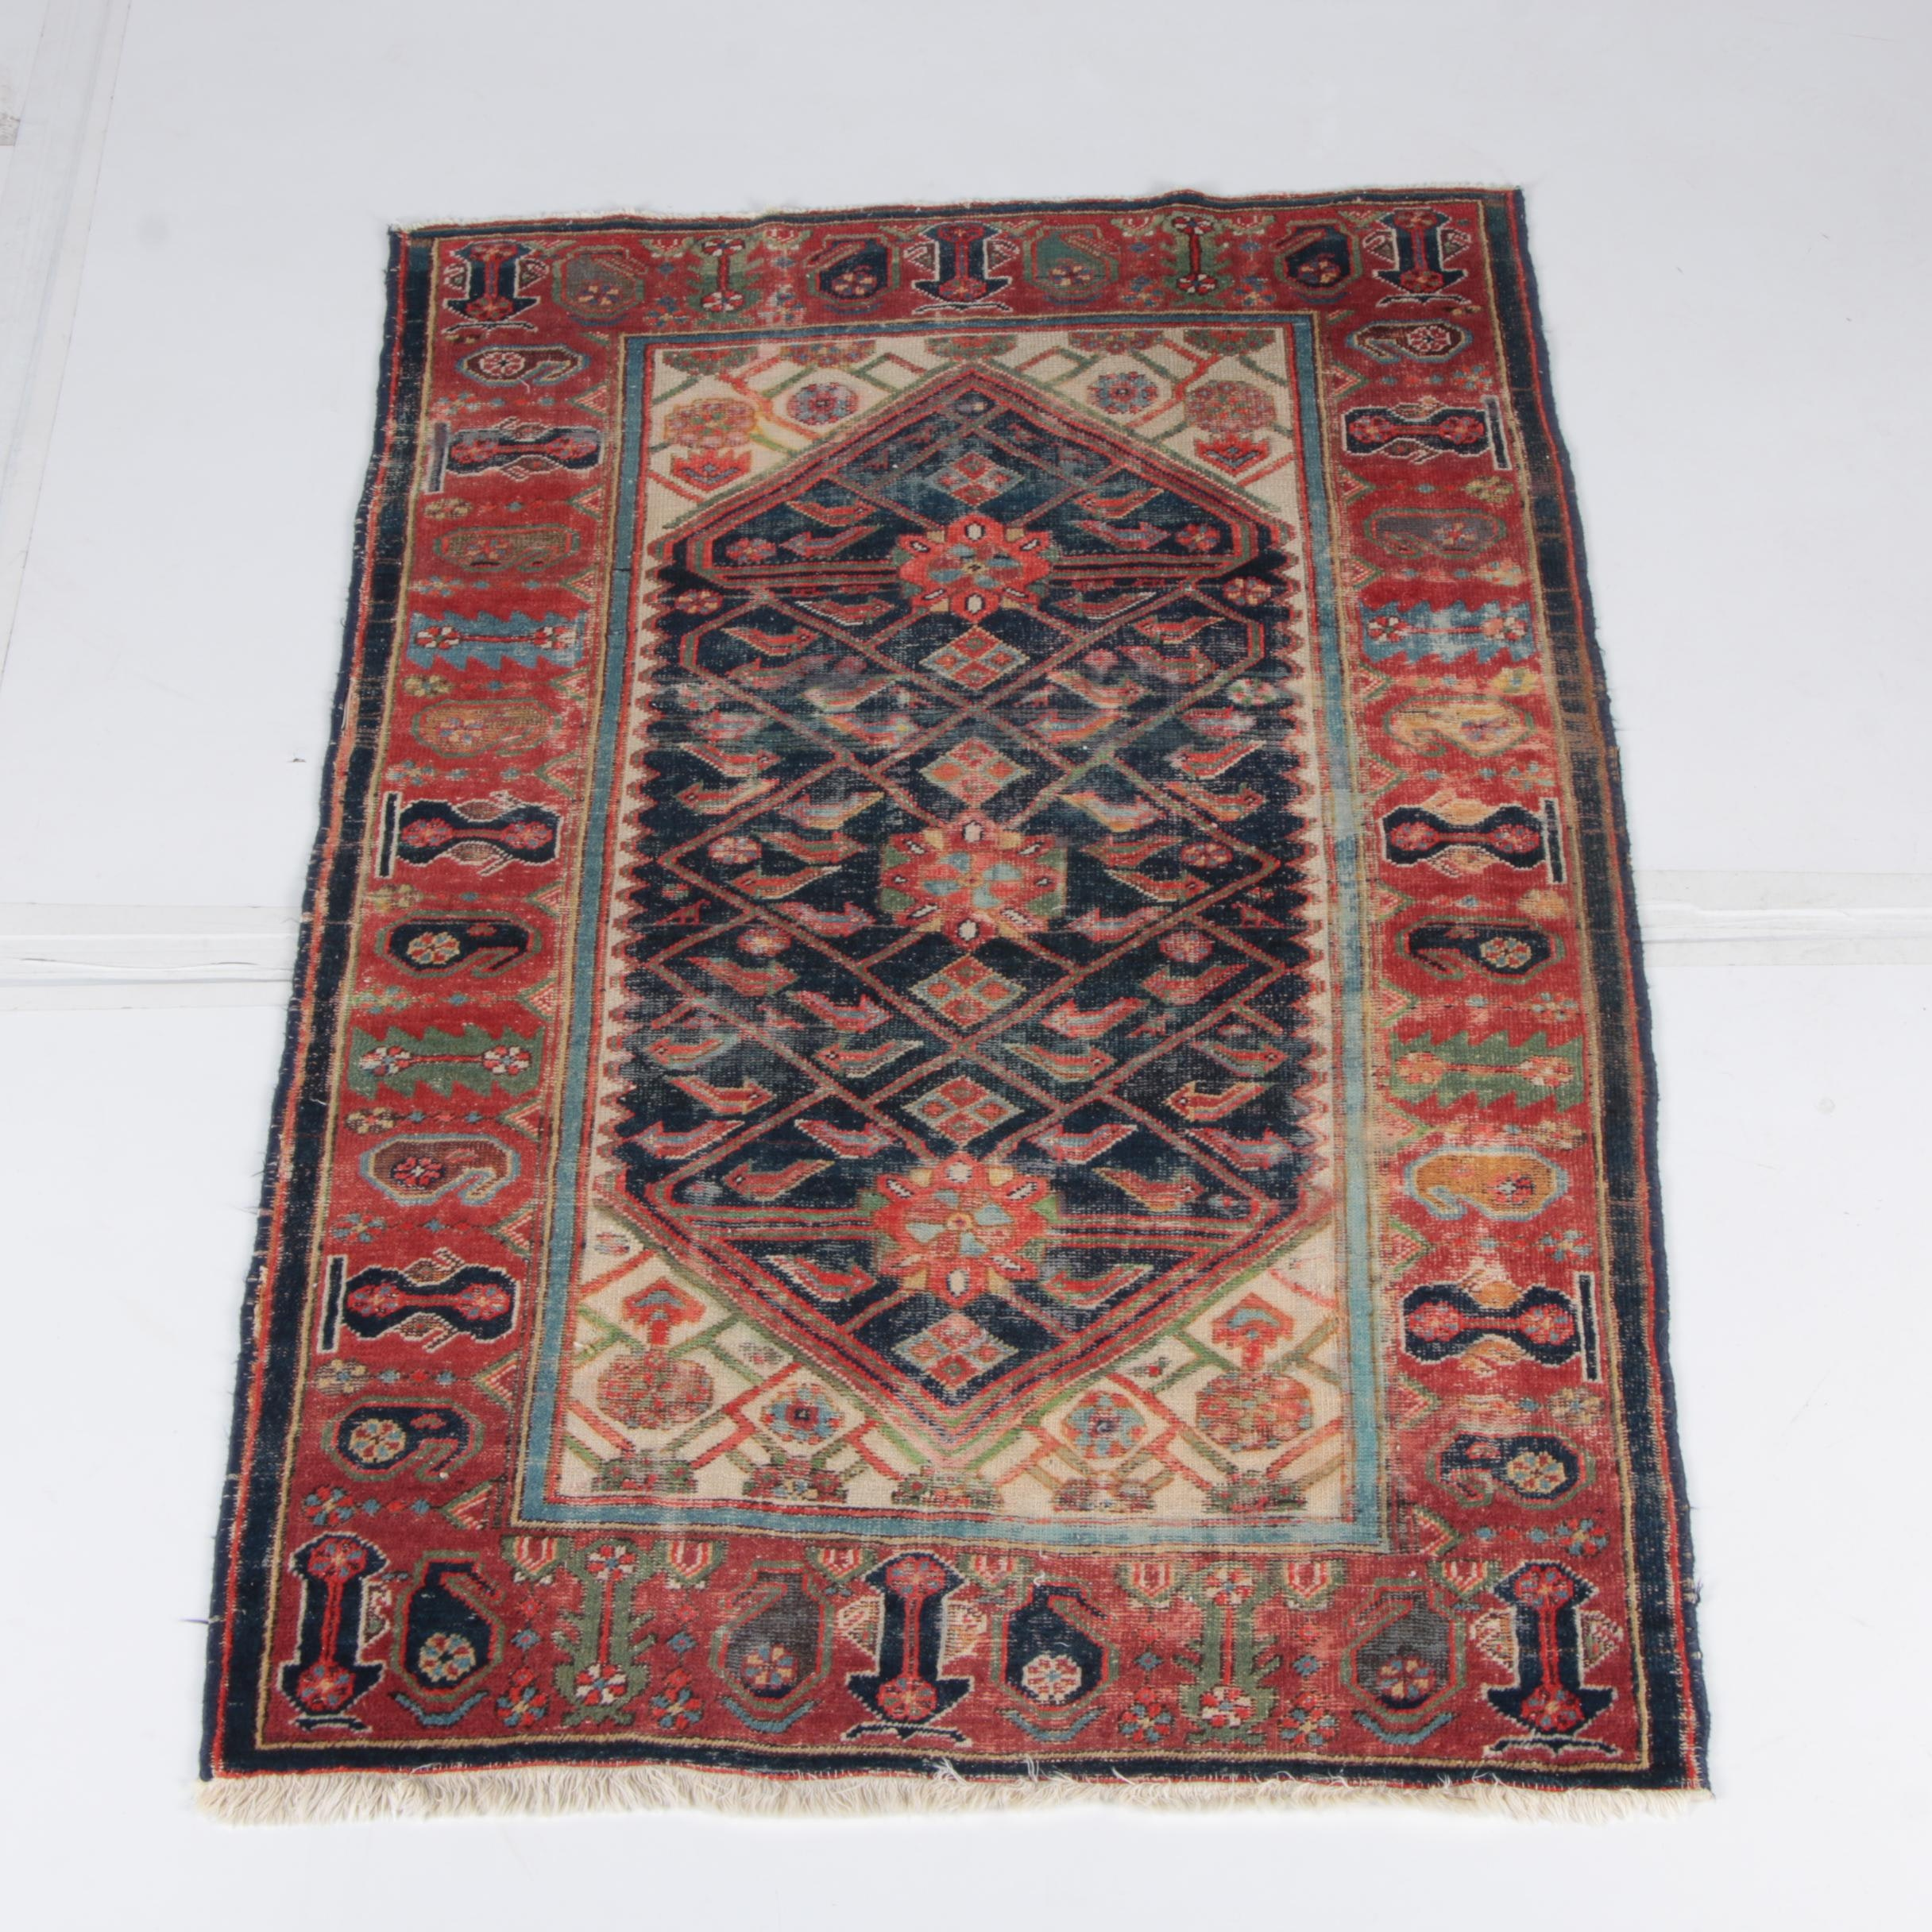 Antique Hand-Knotted Bijar Wool Area Rug